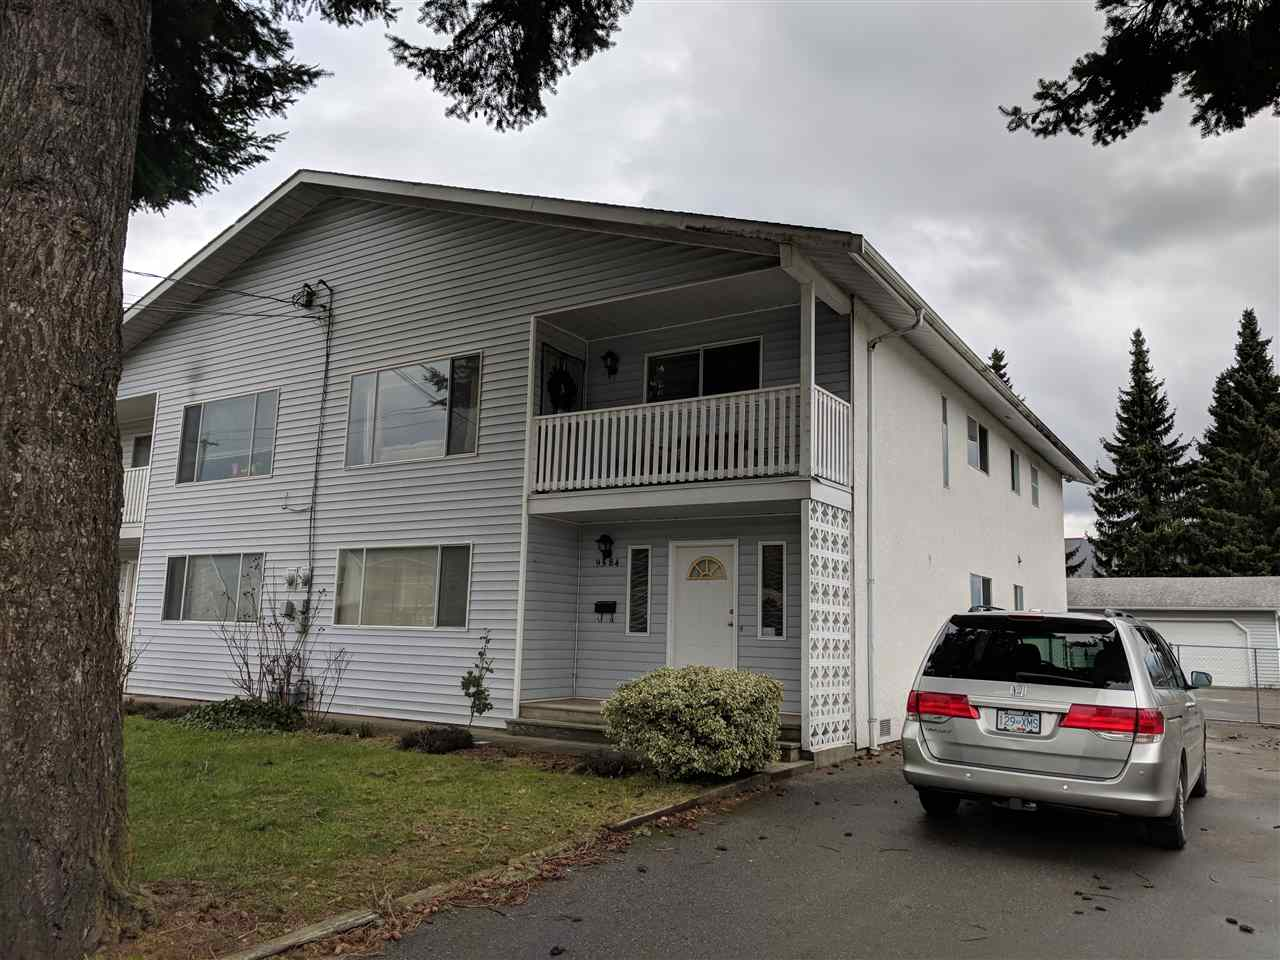 Main Photo: 9584-9586 WILLIAMS STREET in Chilliwack: Chilliwack N Yale-Well Home for sale : MLS®# R2244551